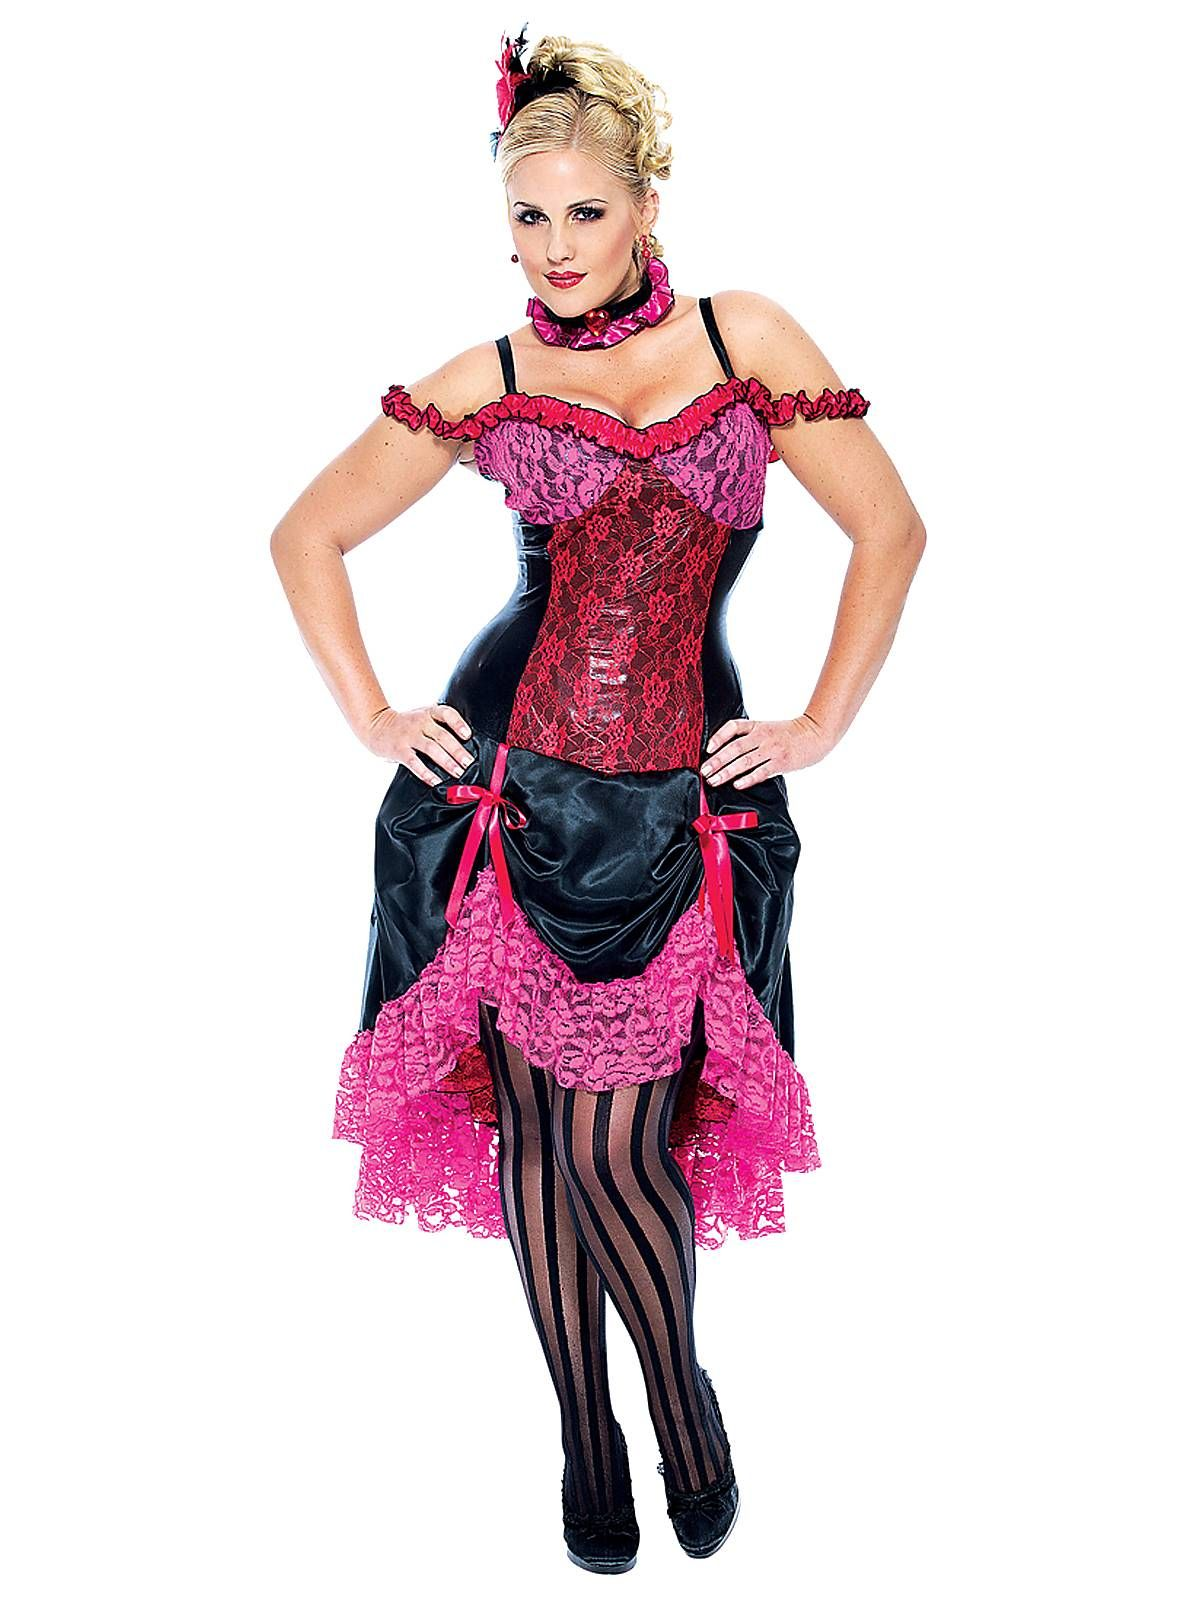 sexy madame can can dancer plus size costume wholesale saloon girl costumes for adults - Can Can Dancer Halloween Costume